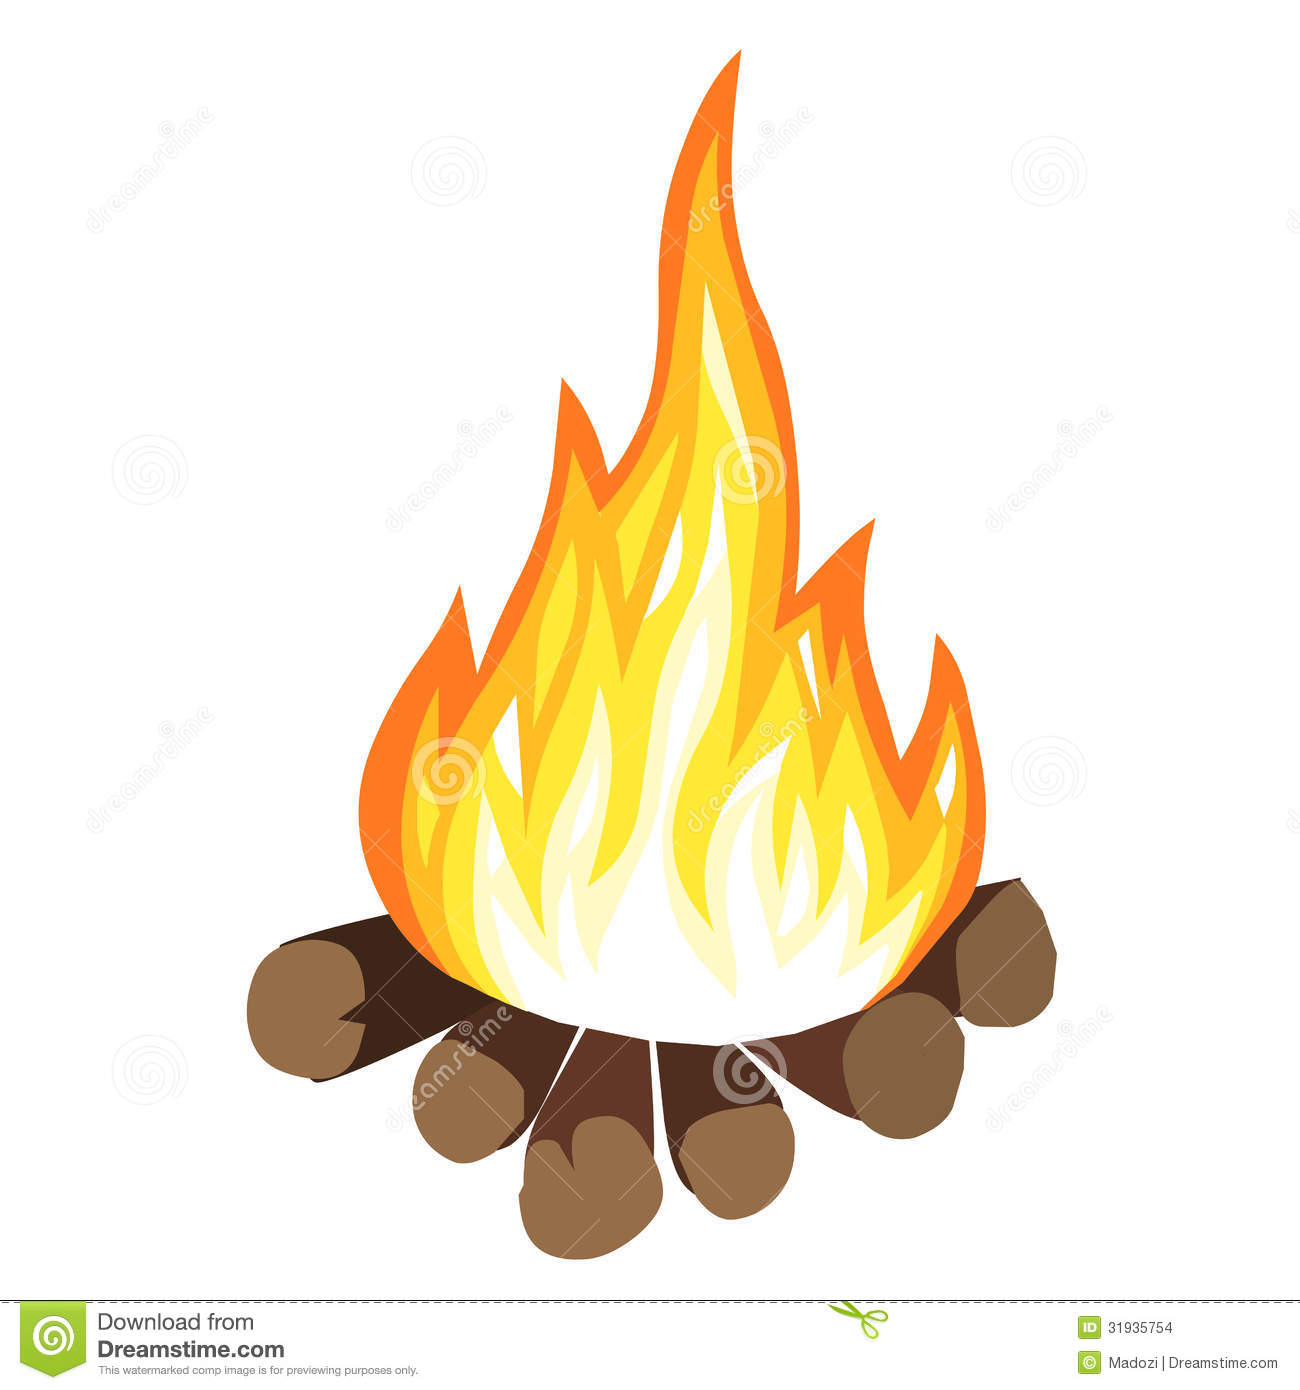 Campfire clipart clear background White Images Panda Clipart black%20and%20white%20campfire%20clipart